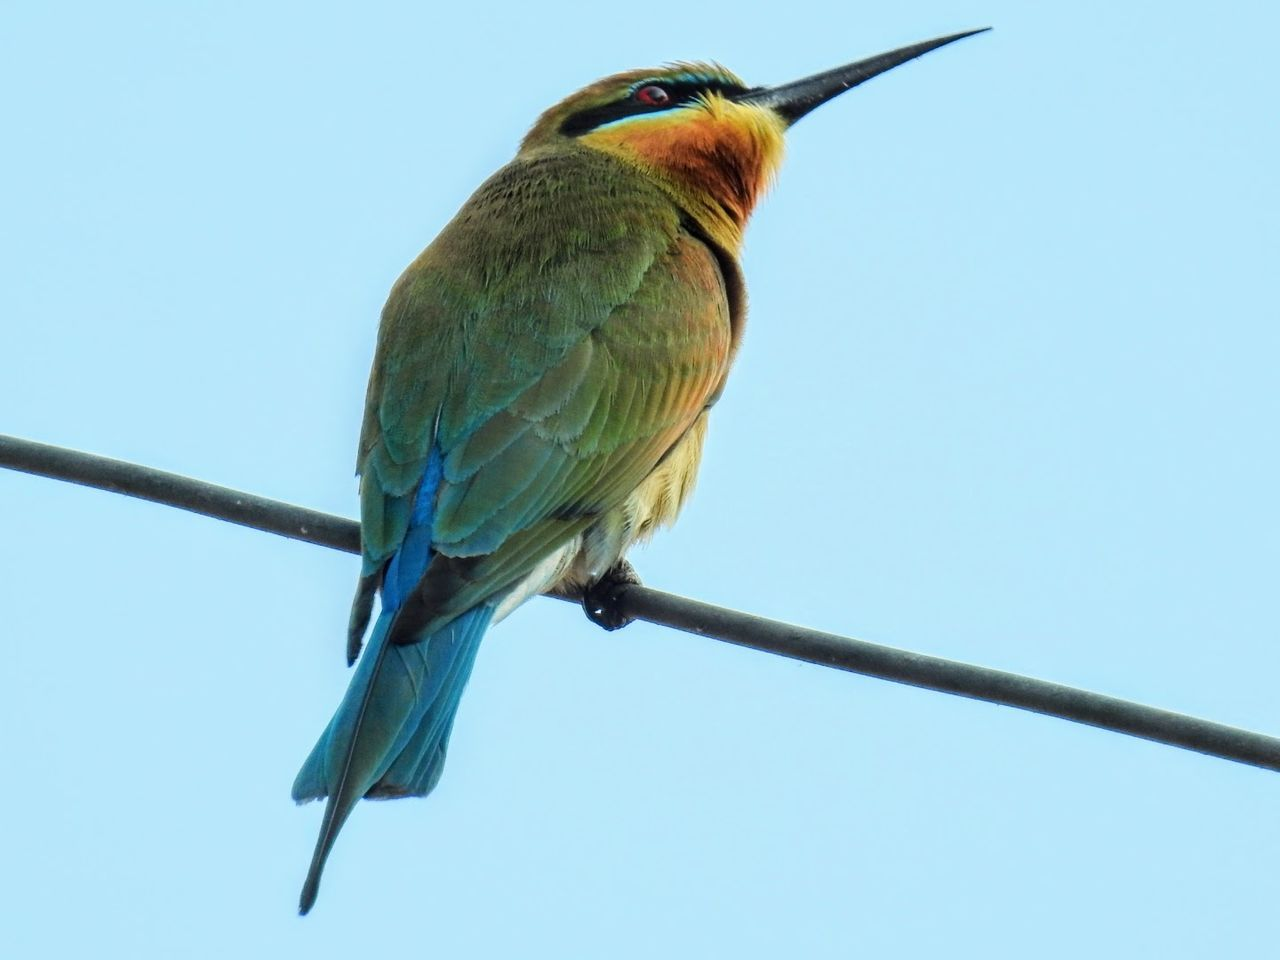 A Bluetailed Bee Eater Nature Nature Photography Clear Sky Bird Perching Nature No People Close-up Day Outdoors